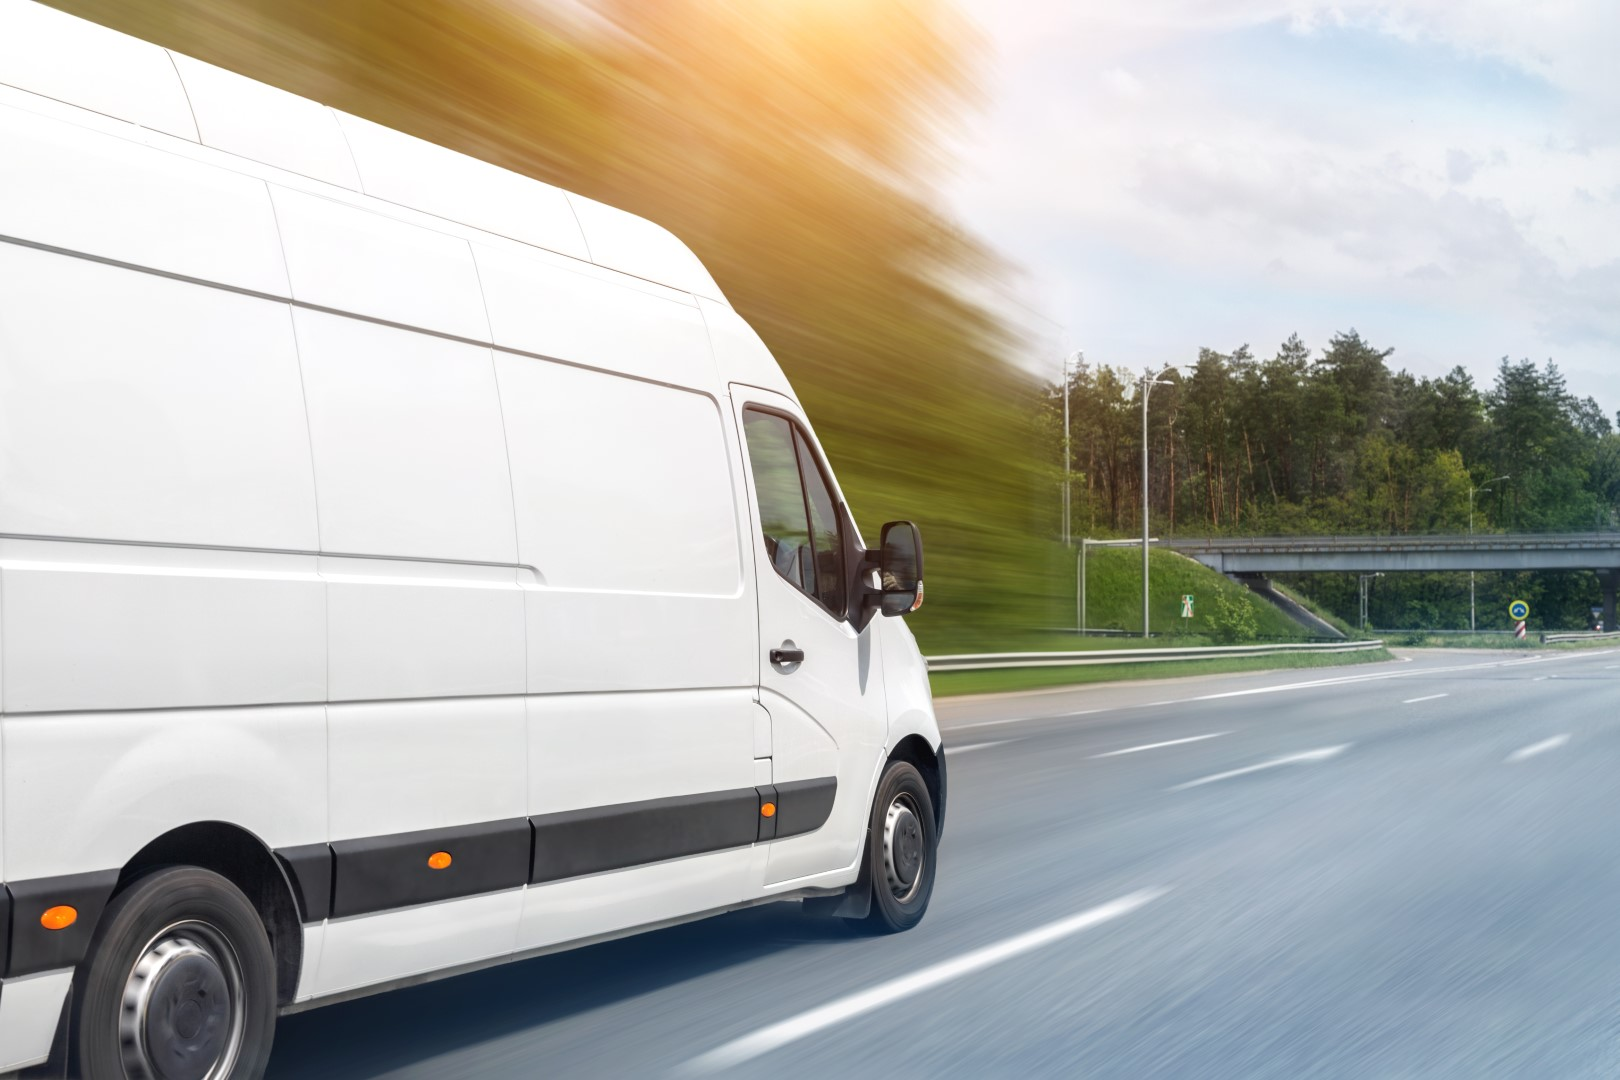 White,modern,delivery,small,shipment,cargo,courier,van,moving,fast - Barnsley Commercial Sales Ltd